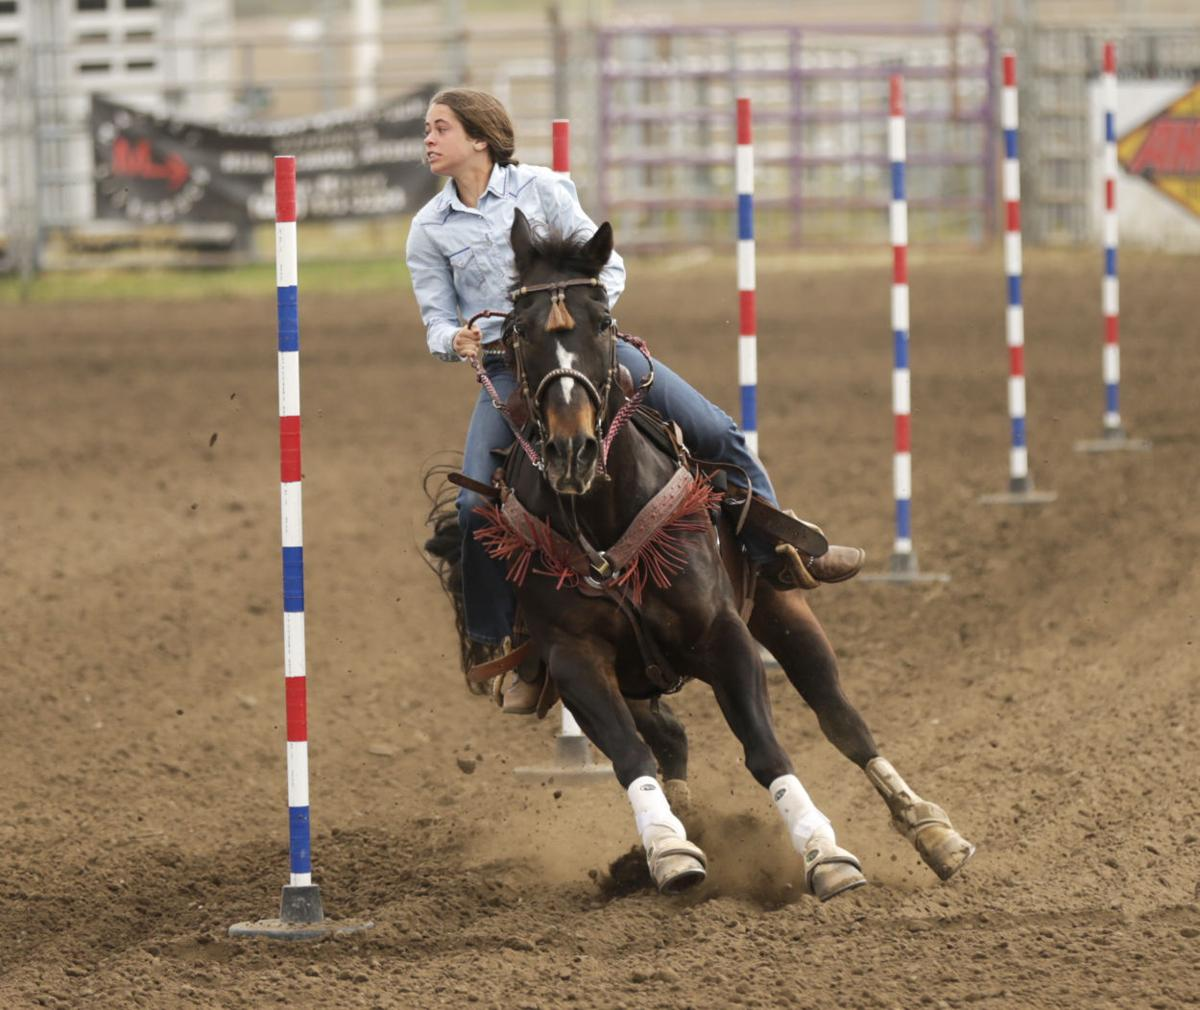 Young Competitors Eat Breathe Dream Rodeo Local News